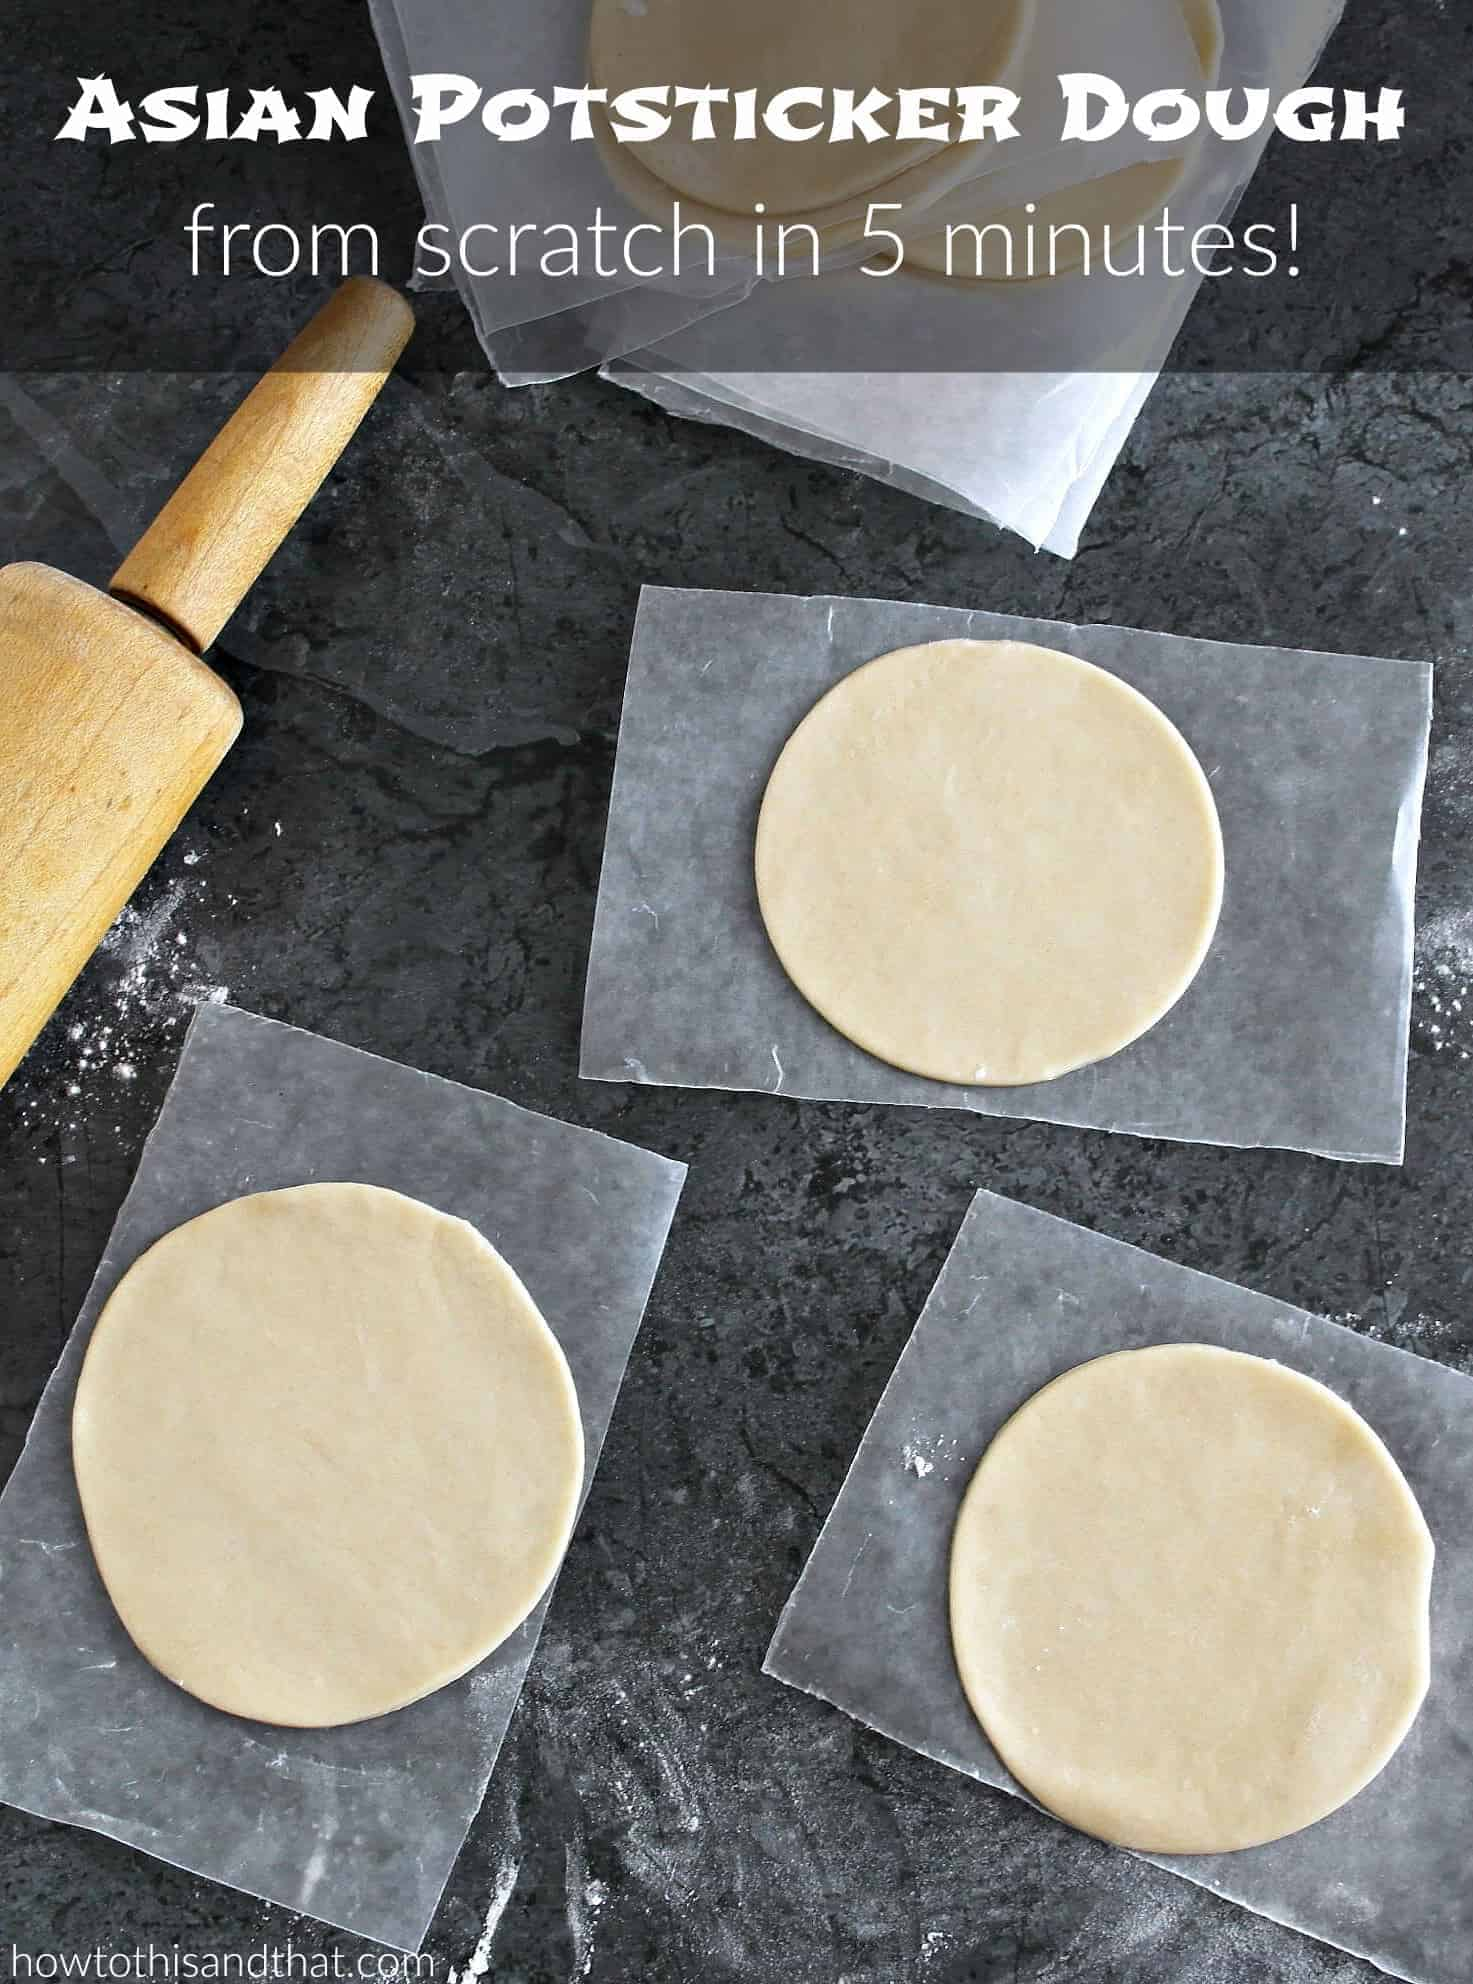 VIDEO: How To Make Amazing Asian Potsticker Dough in 5 Minutes 1